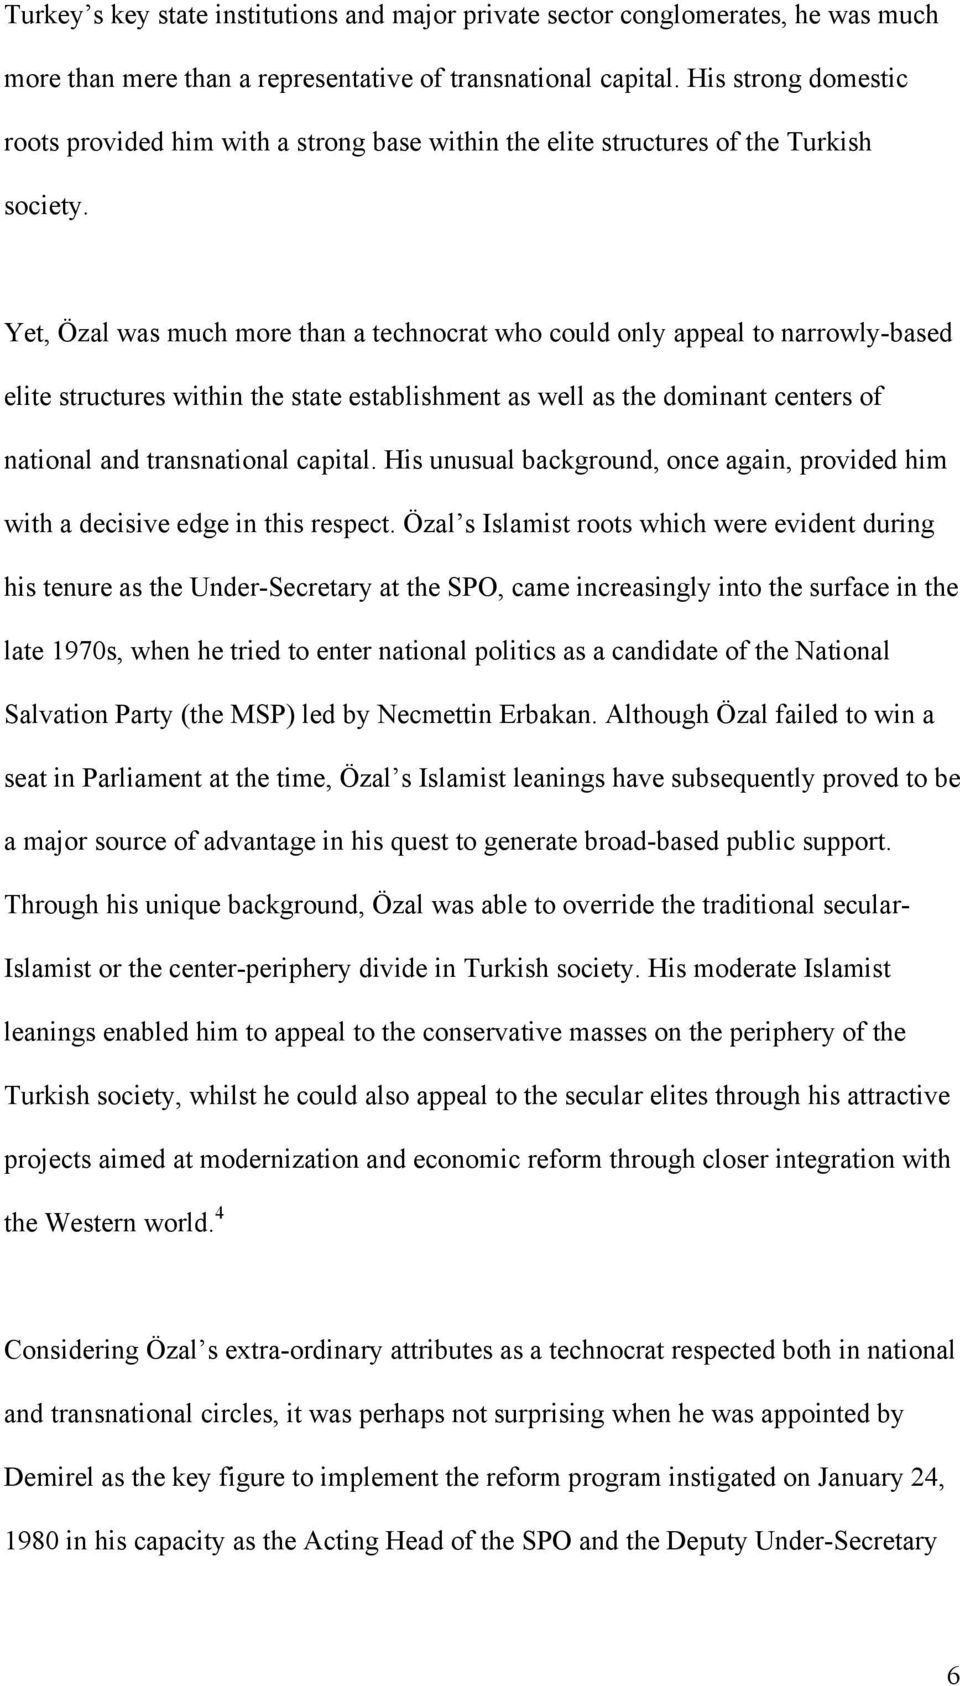 Yet, Özal was much more than a technocrat who could only appeal to narrowly-based elite structures within the state establishment as well as the dominant centers of national and transnational capital.